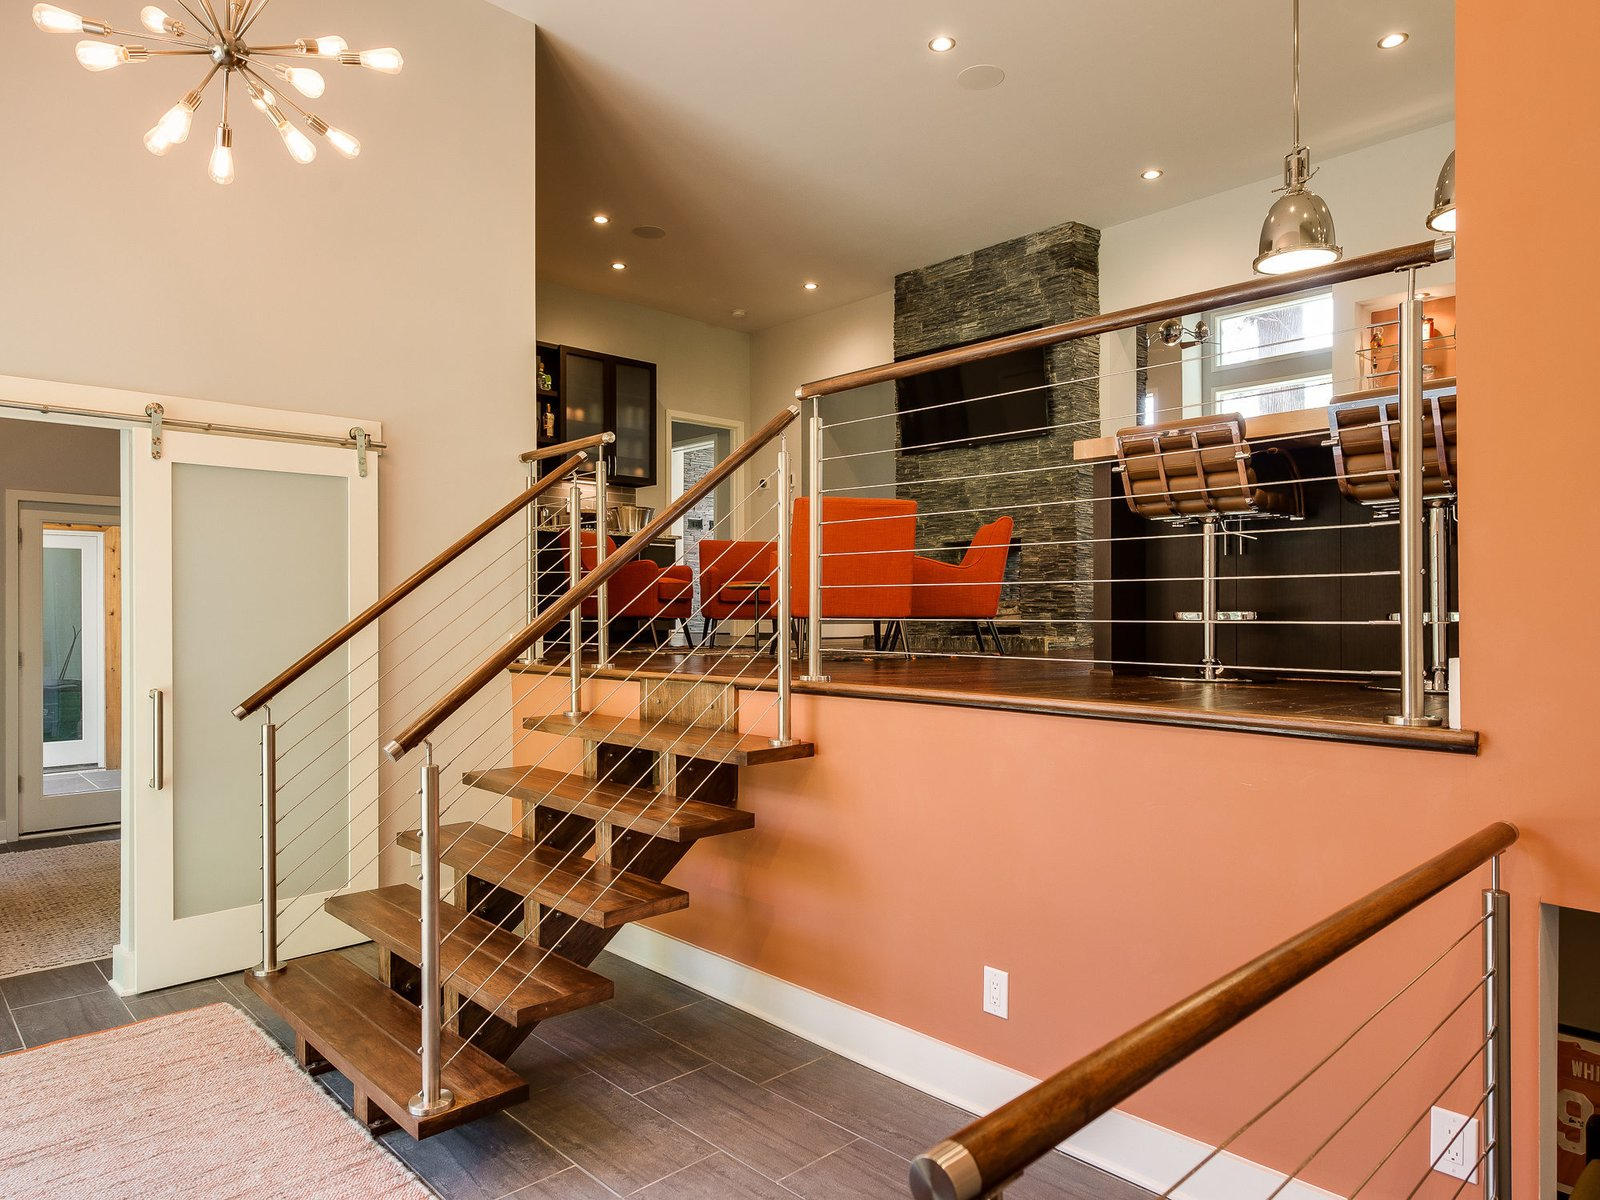 """""""My favorite feature is the entry of the home,"""" says Finein. """"It is where you see the greatest transformation, both inside and out."""" Hickory floating stairs and a stainless steel railing system lead to the upper floor. Through the frosted glass barn door is the office, which enjoys a granite countertop built-in desk."""